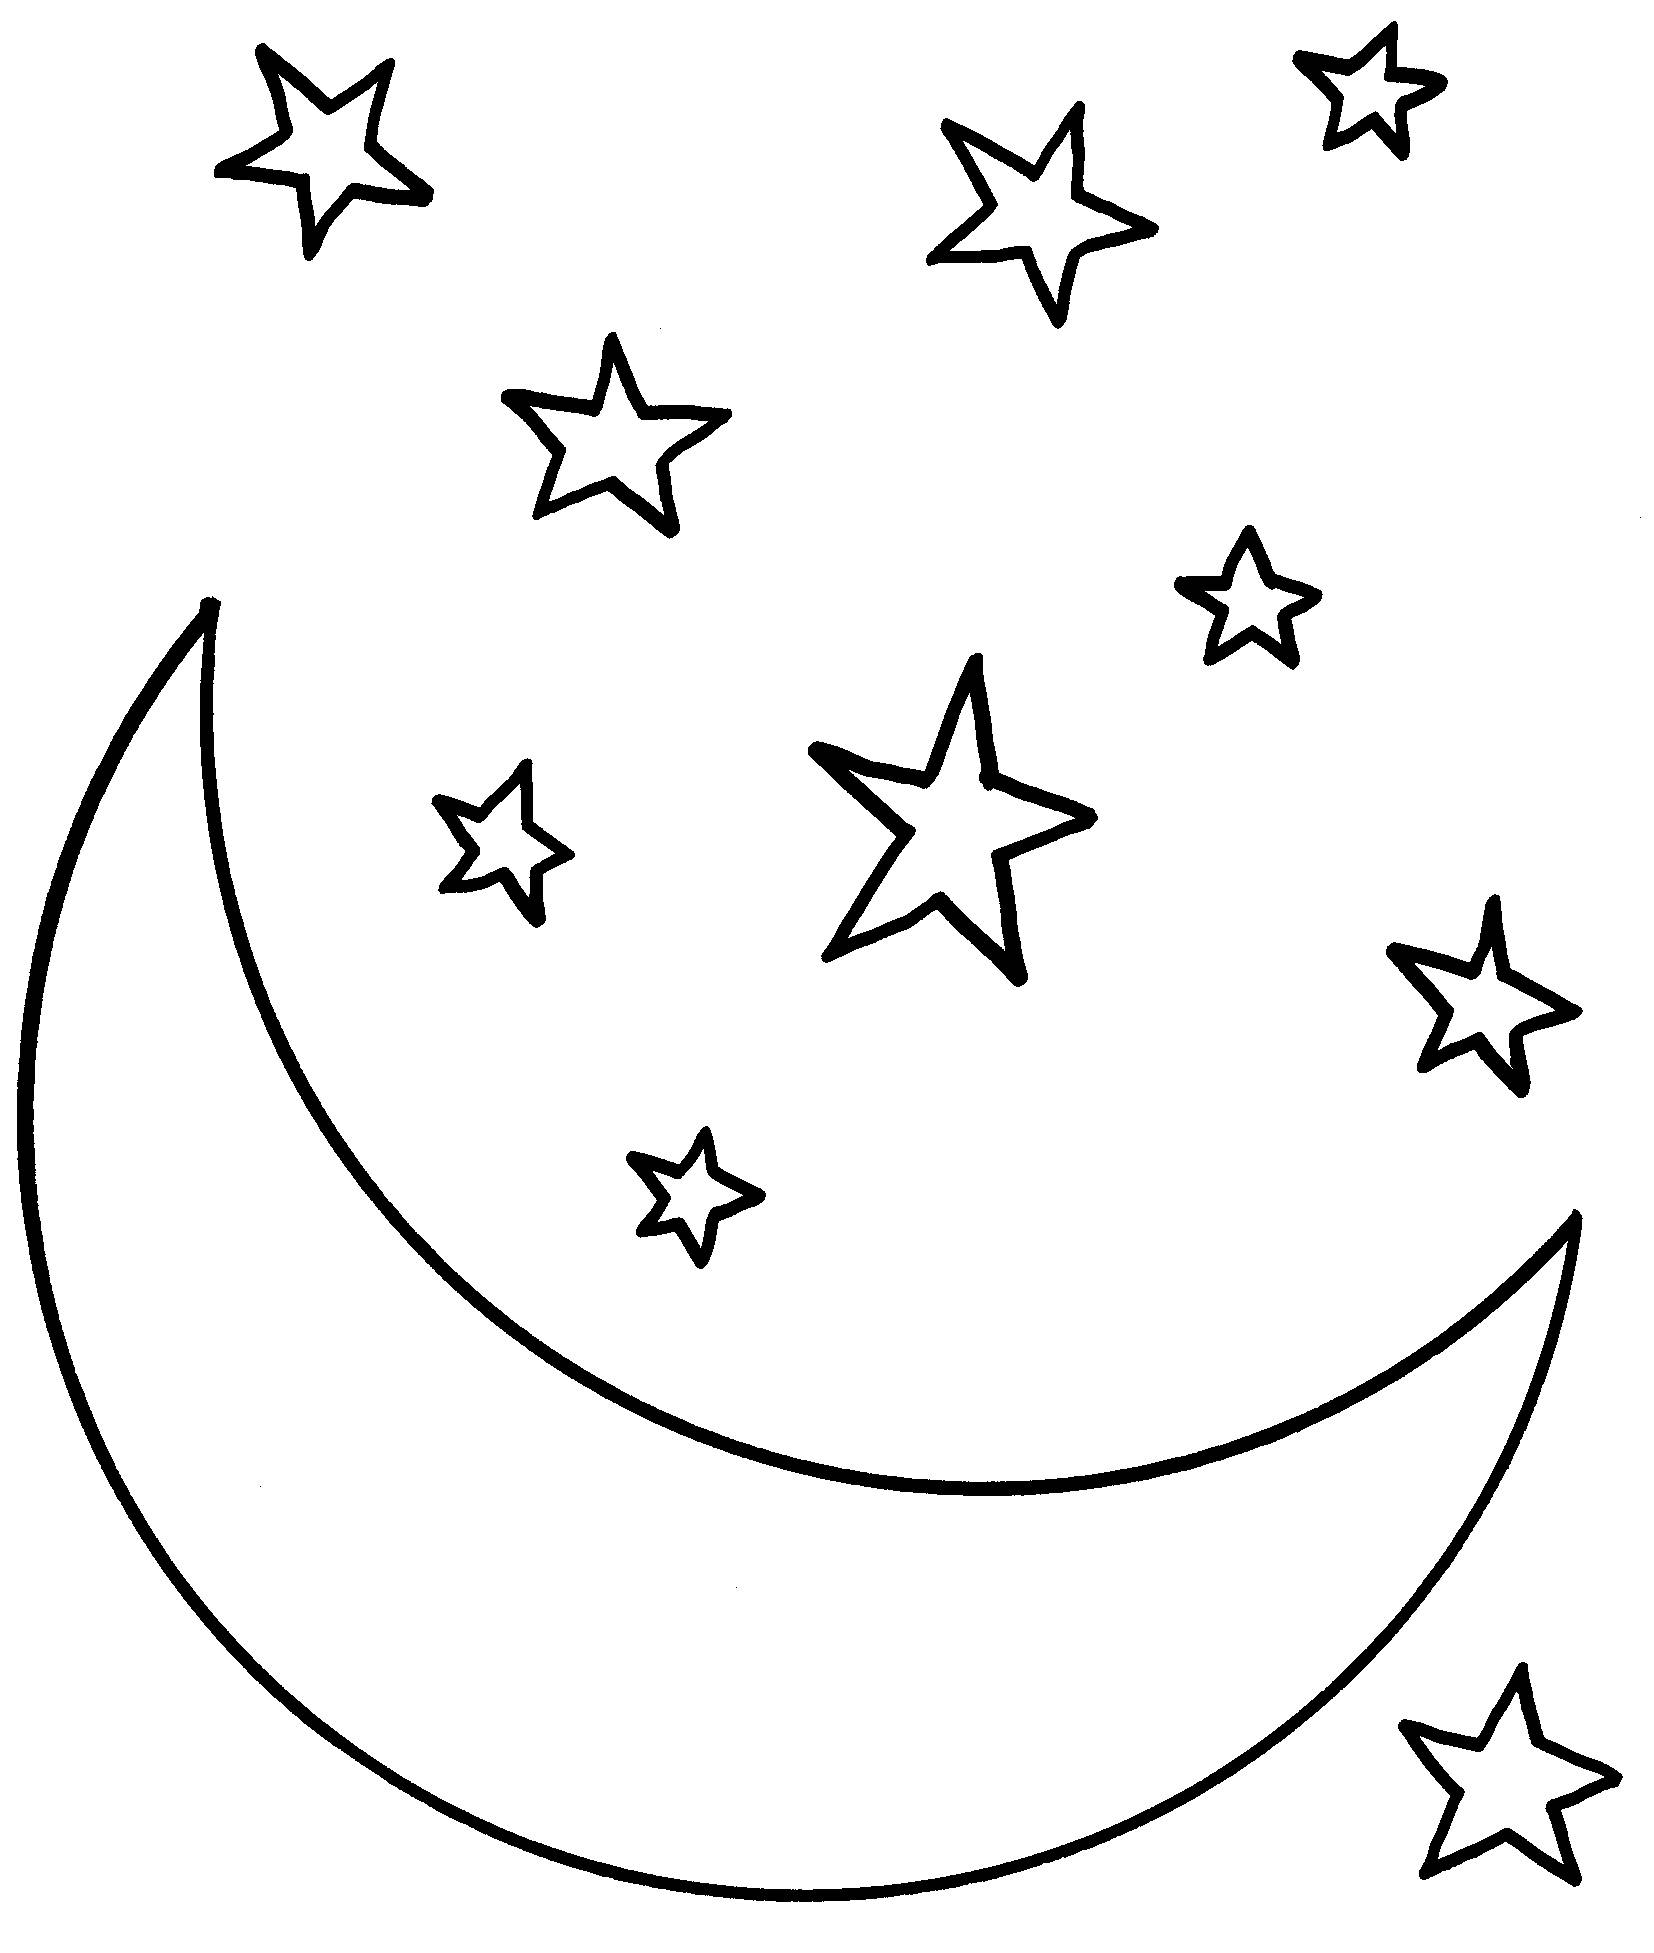 Sun Moon And Stars Coloring Page At Getdrawings Com Free For